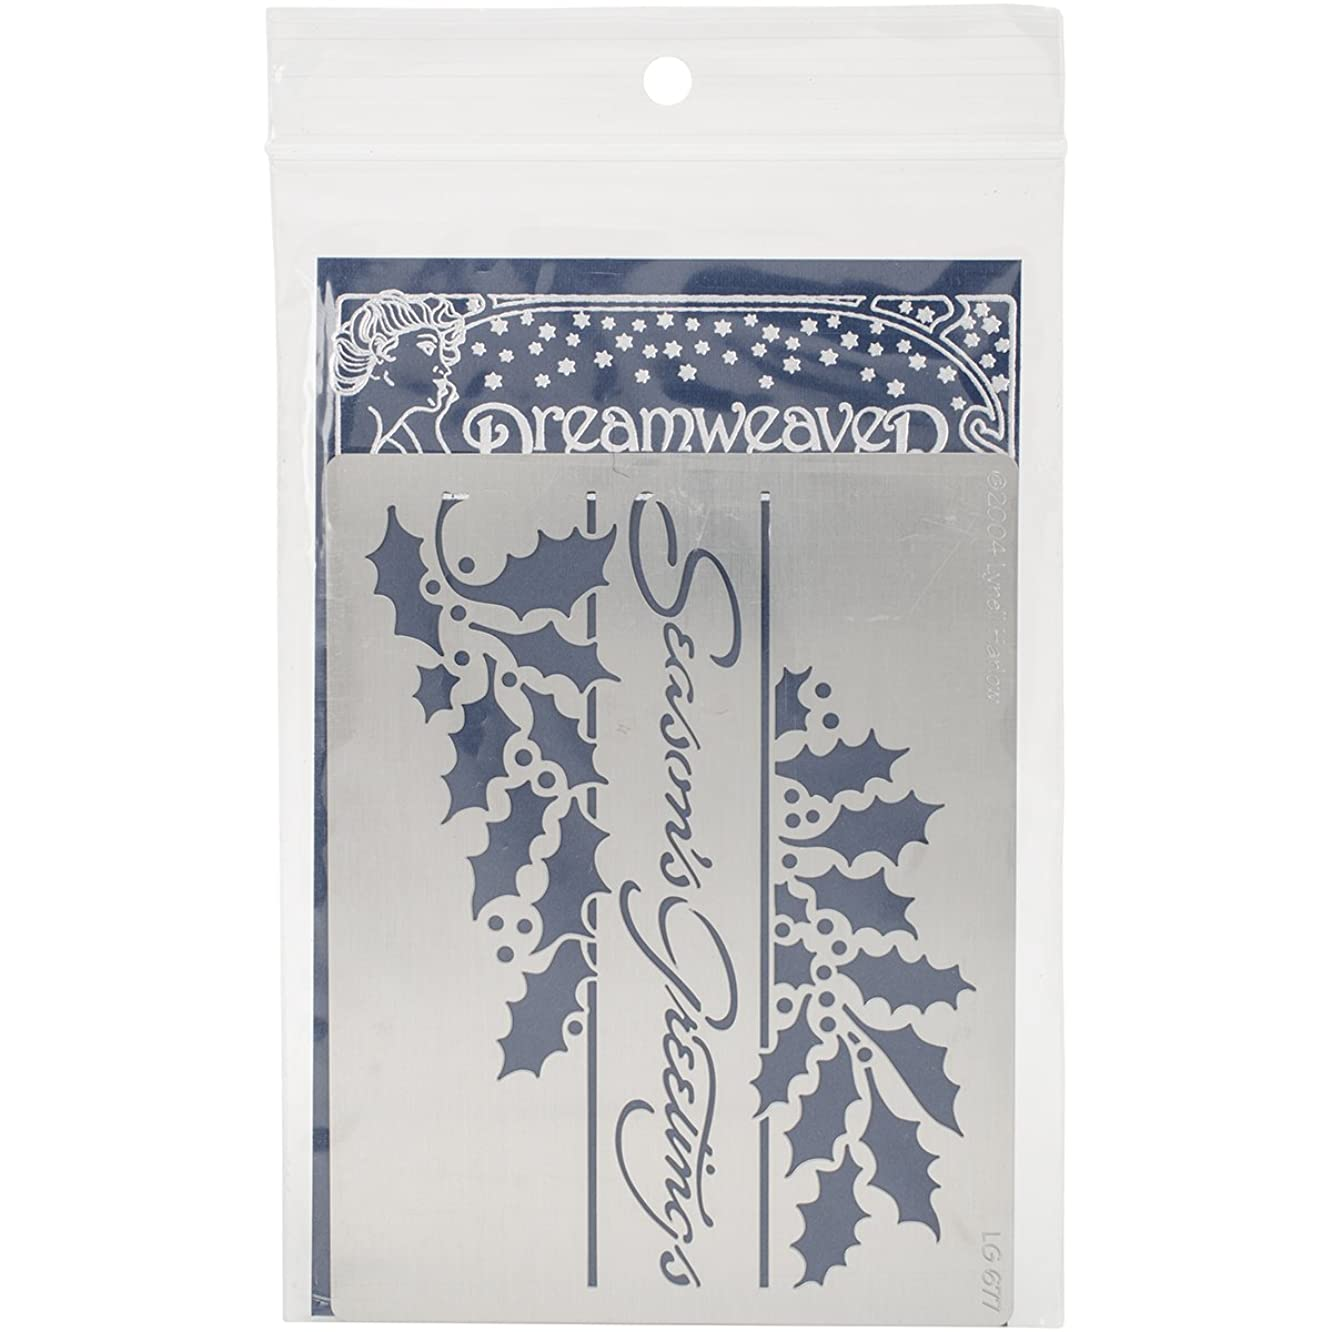 Stampendous Dreamweaver Metal Stencil, Seasons Greetings